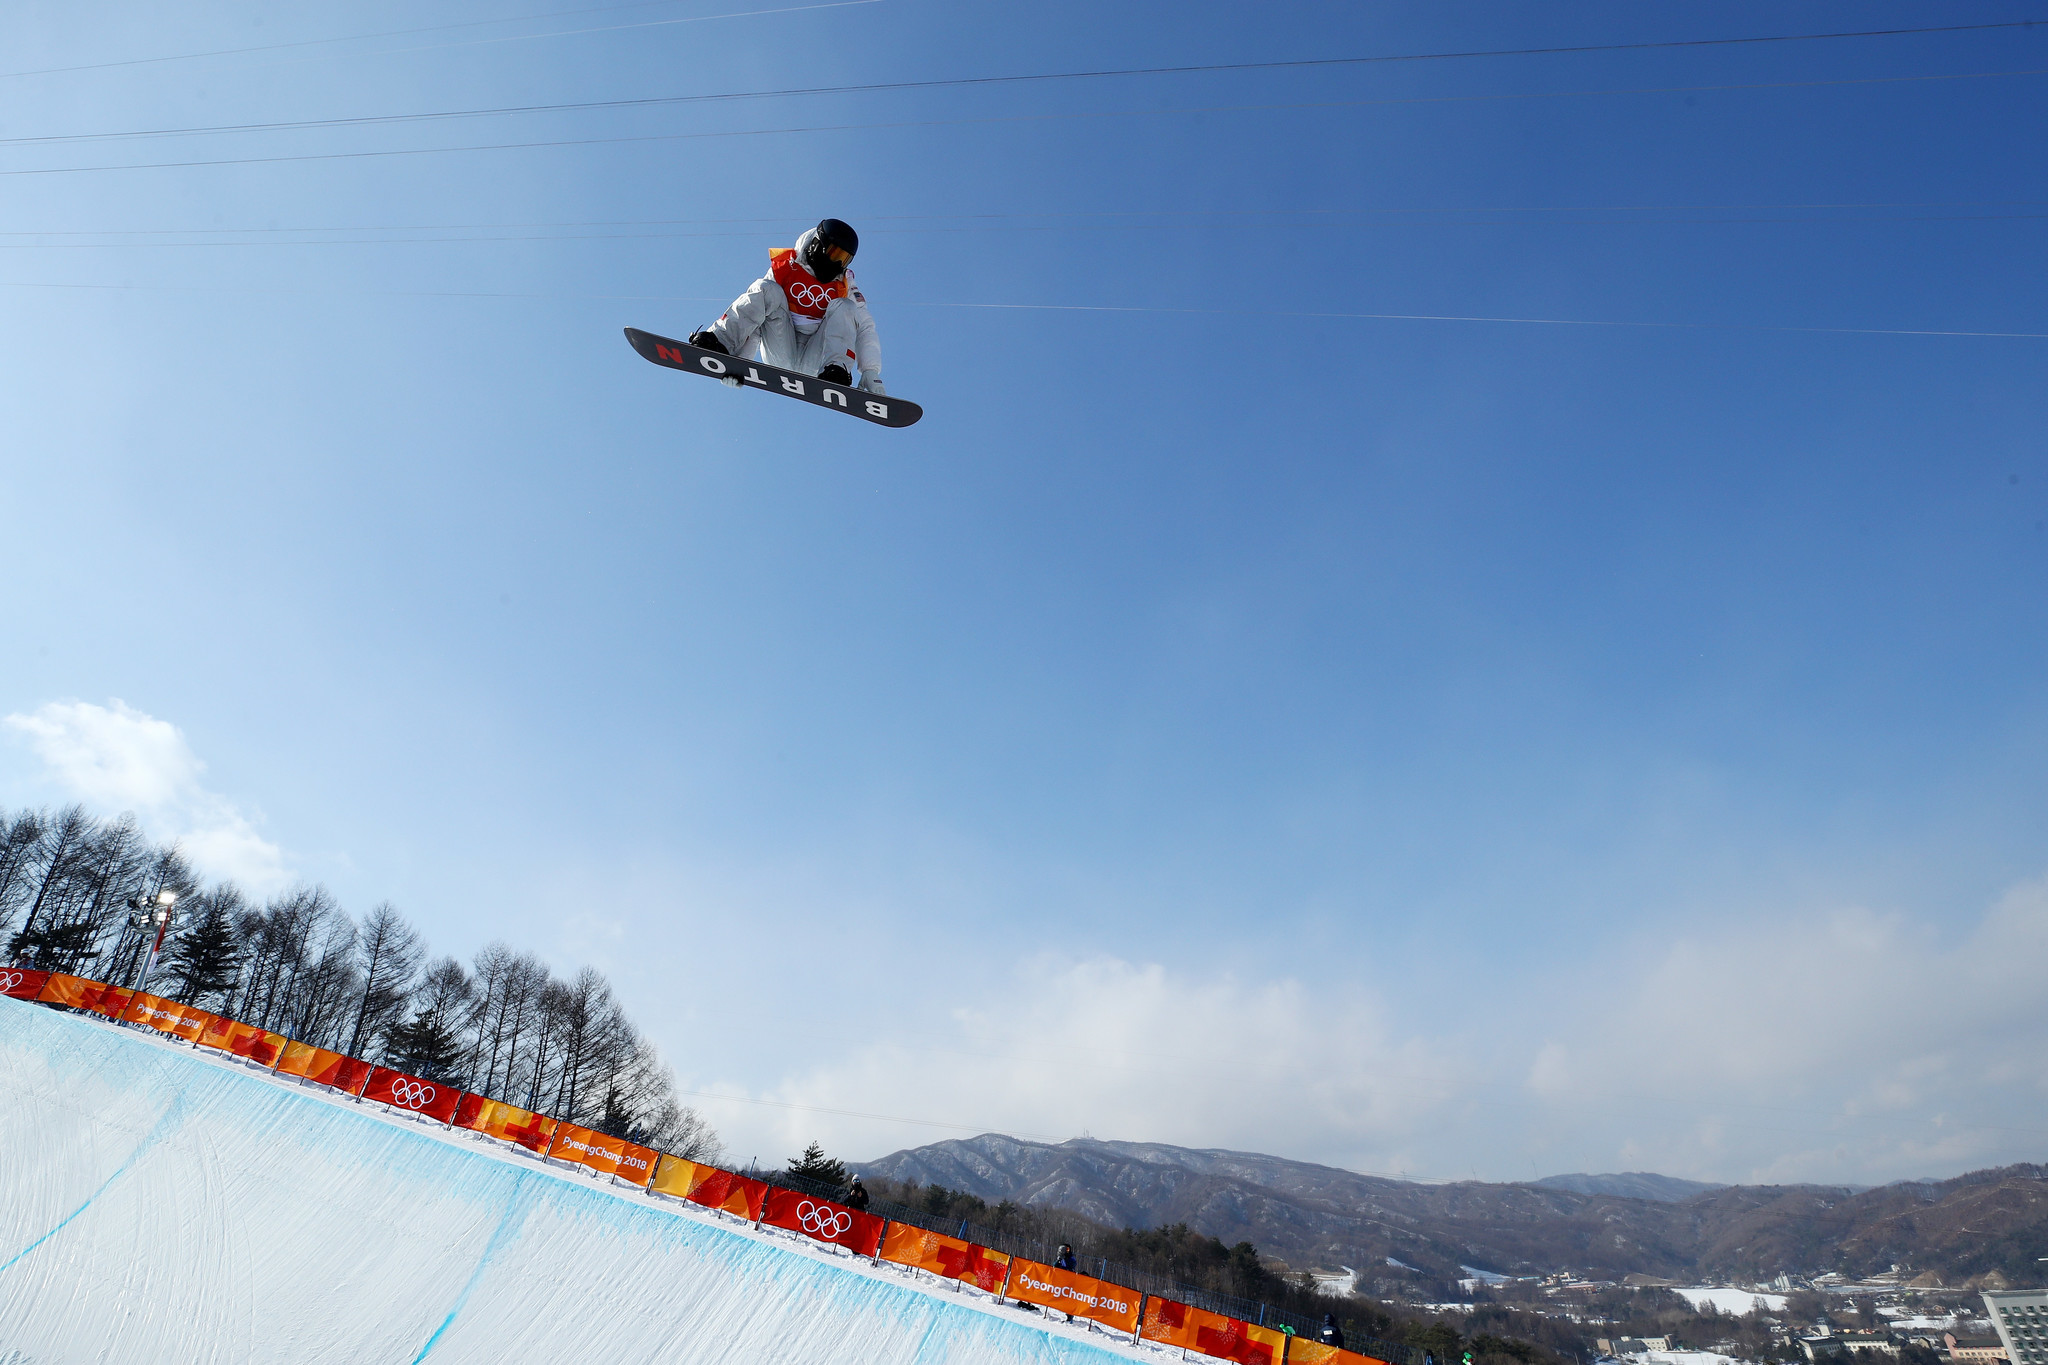 Shaun White at Pyeong Chang Olympics in Half Pipe